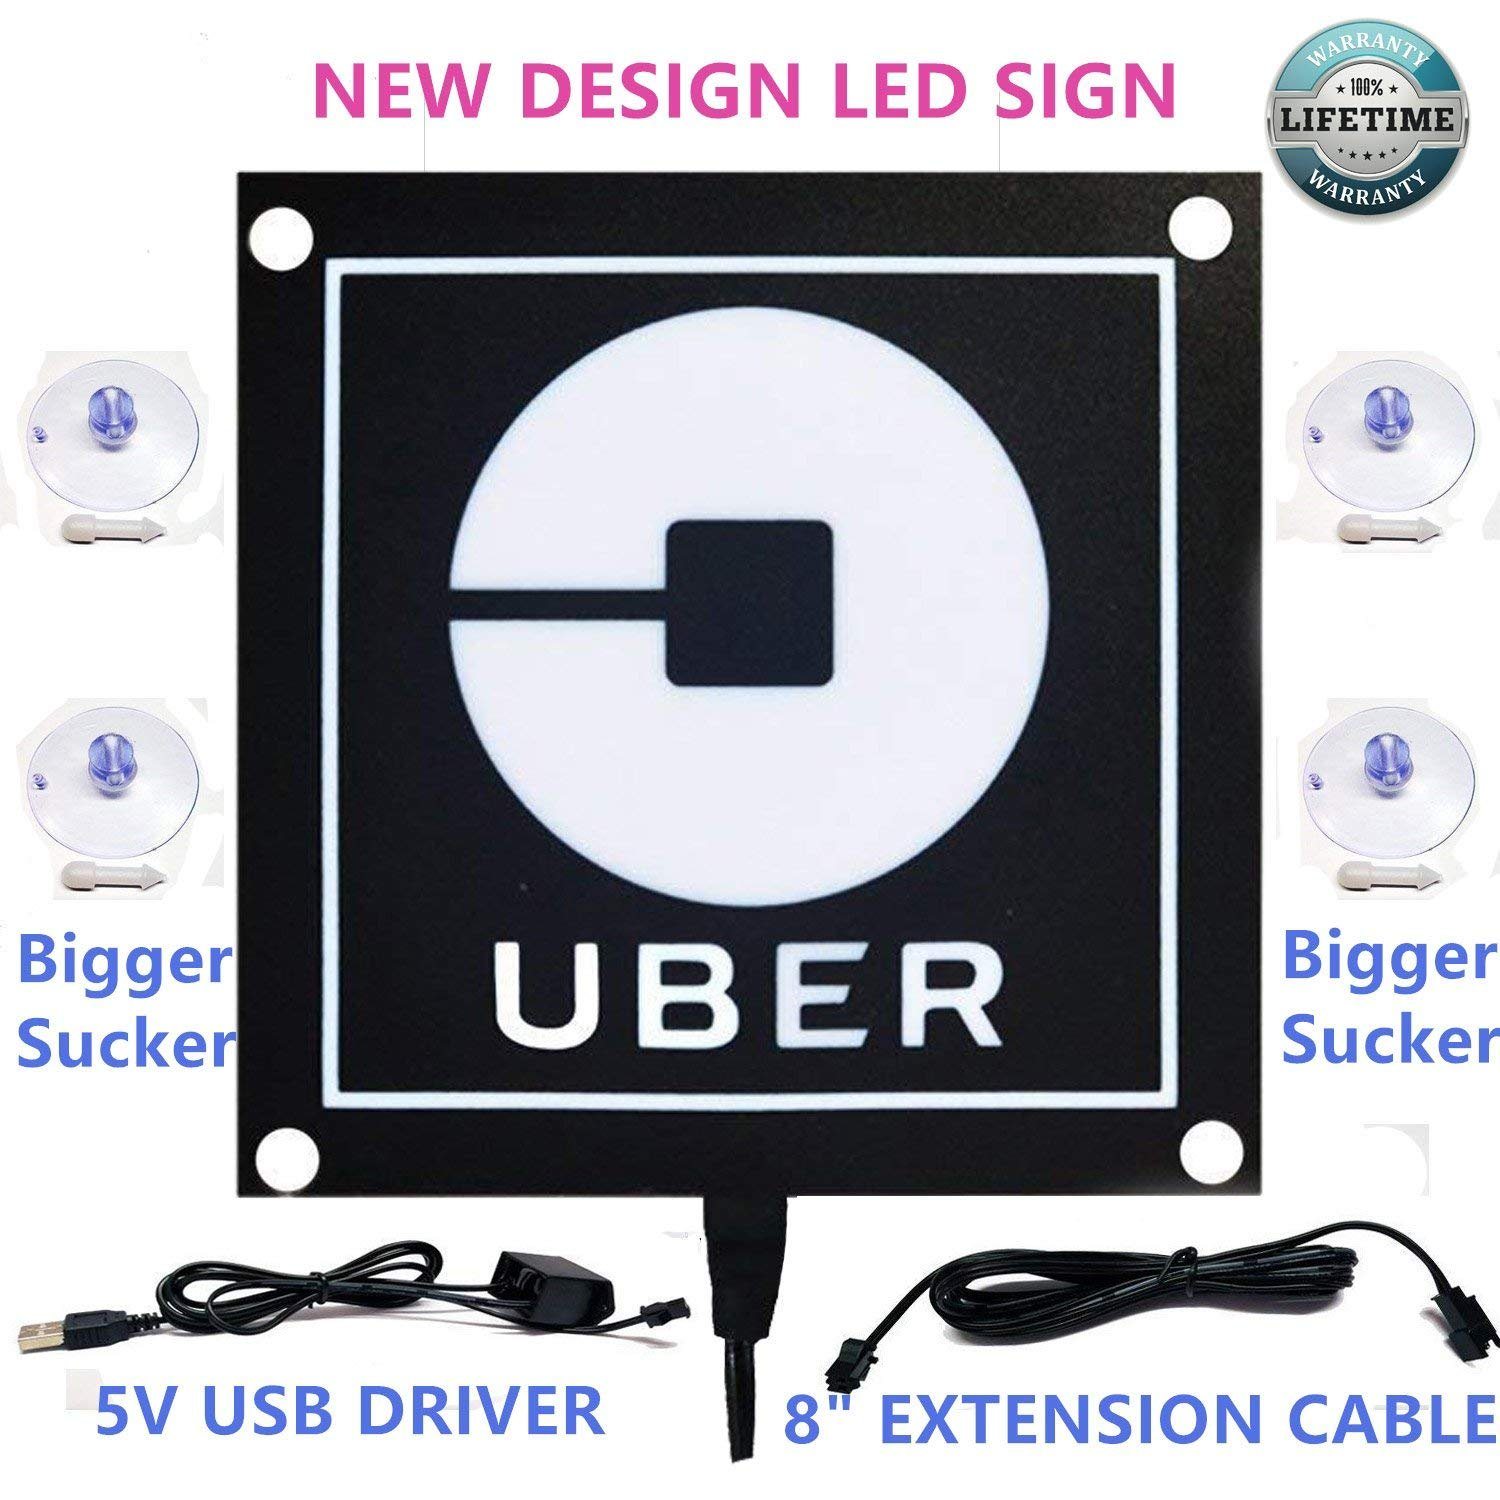 Uber sign light with new uber logo uber el car sticker glow light sign decal on window with usb powered uber lyft led light sign decal sticker on car